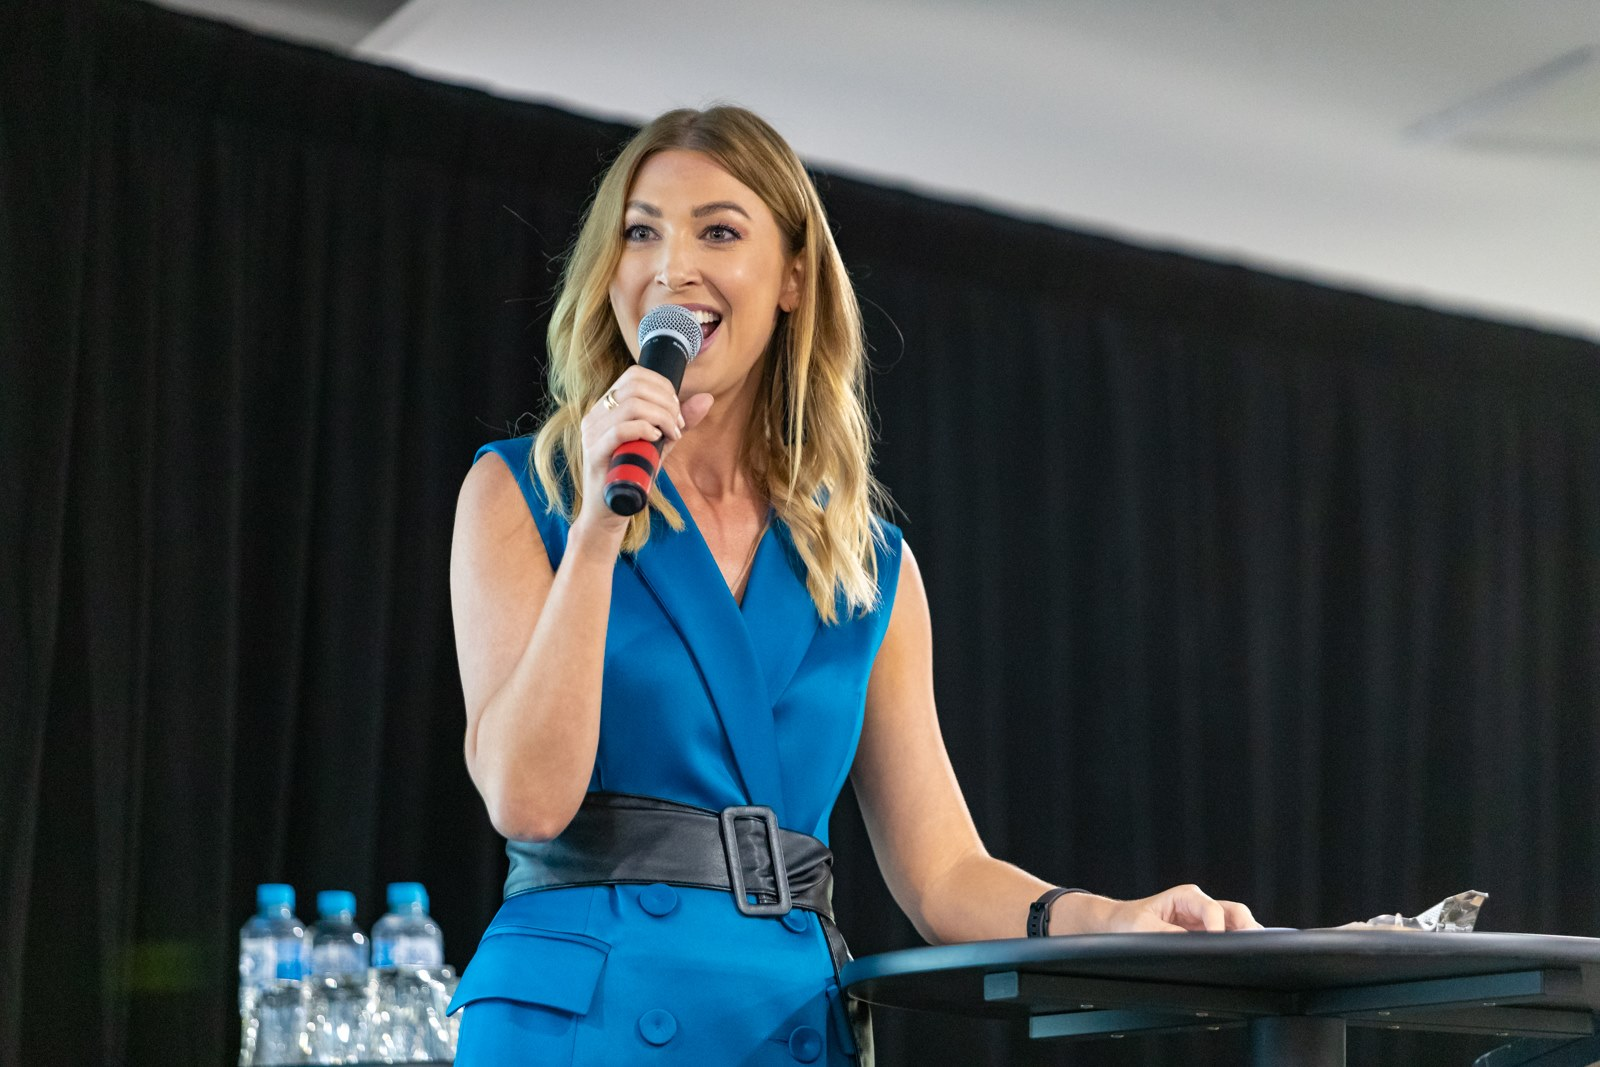 MC SERVICES + TV PRESENTING - With over twelve years experience in the media, established MC & presenter, Amanda Pernechele knows how to hold a room. Hosting radio and television programs, many charity events and food and wine festivals, just to name a few.